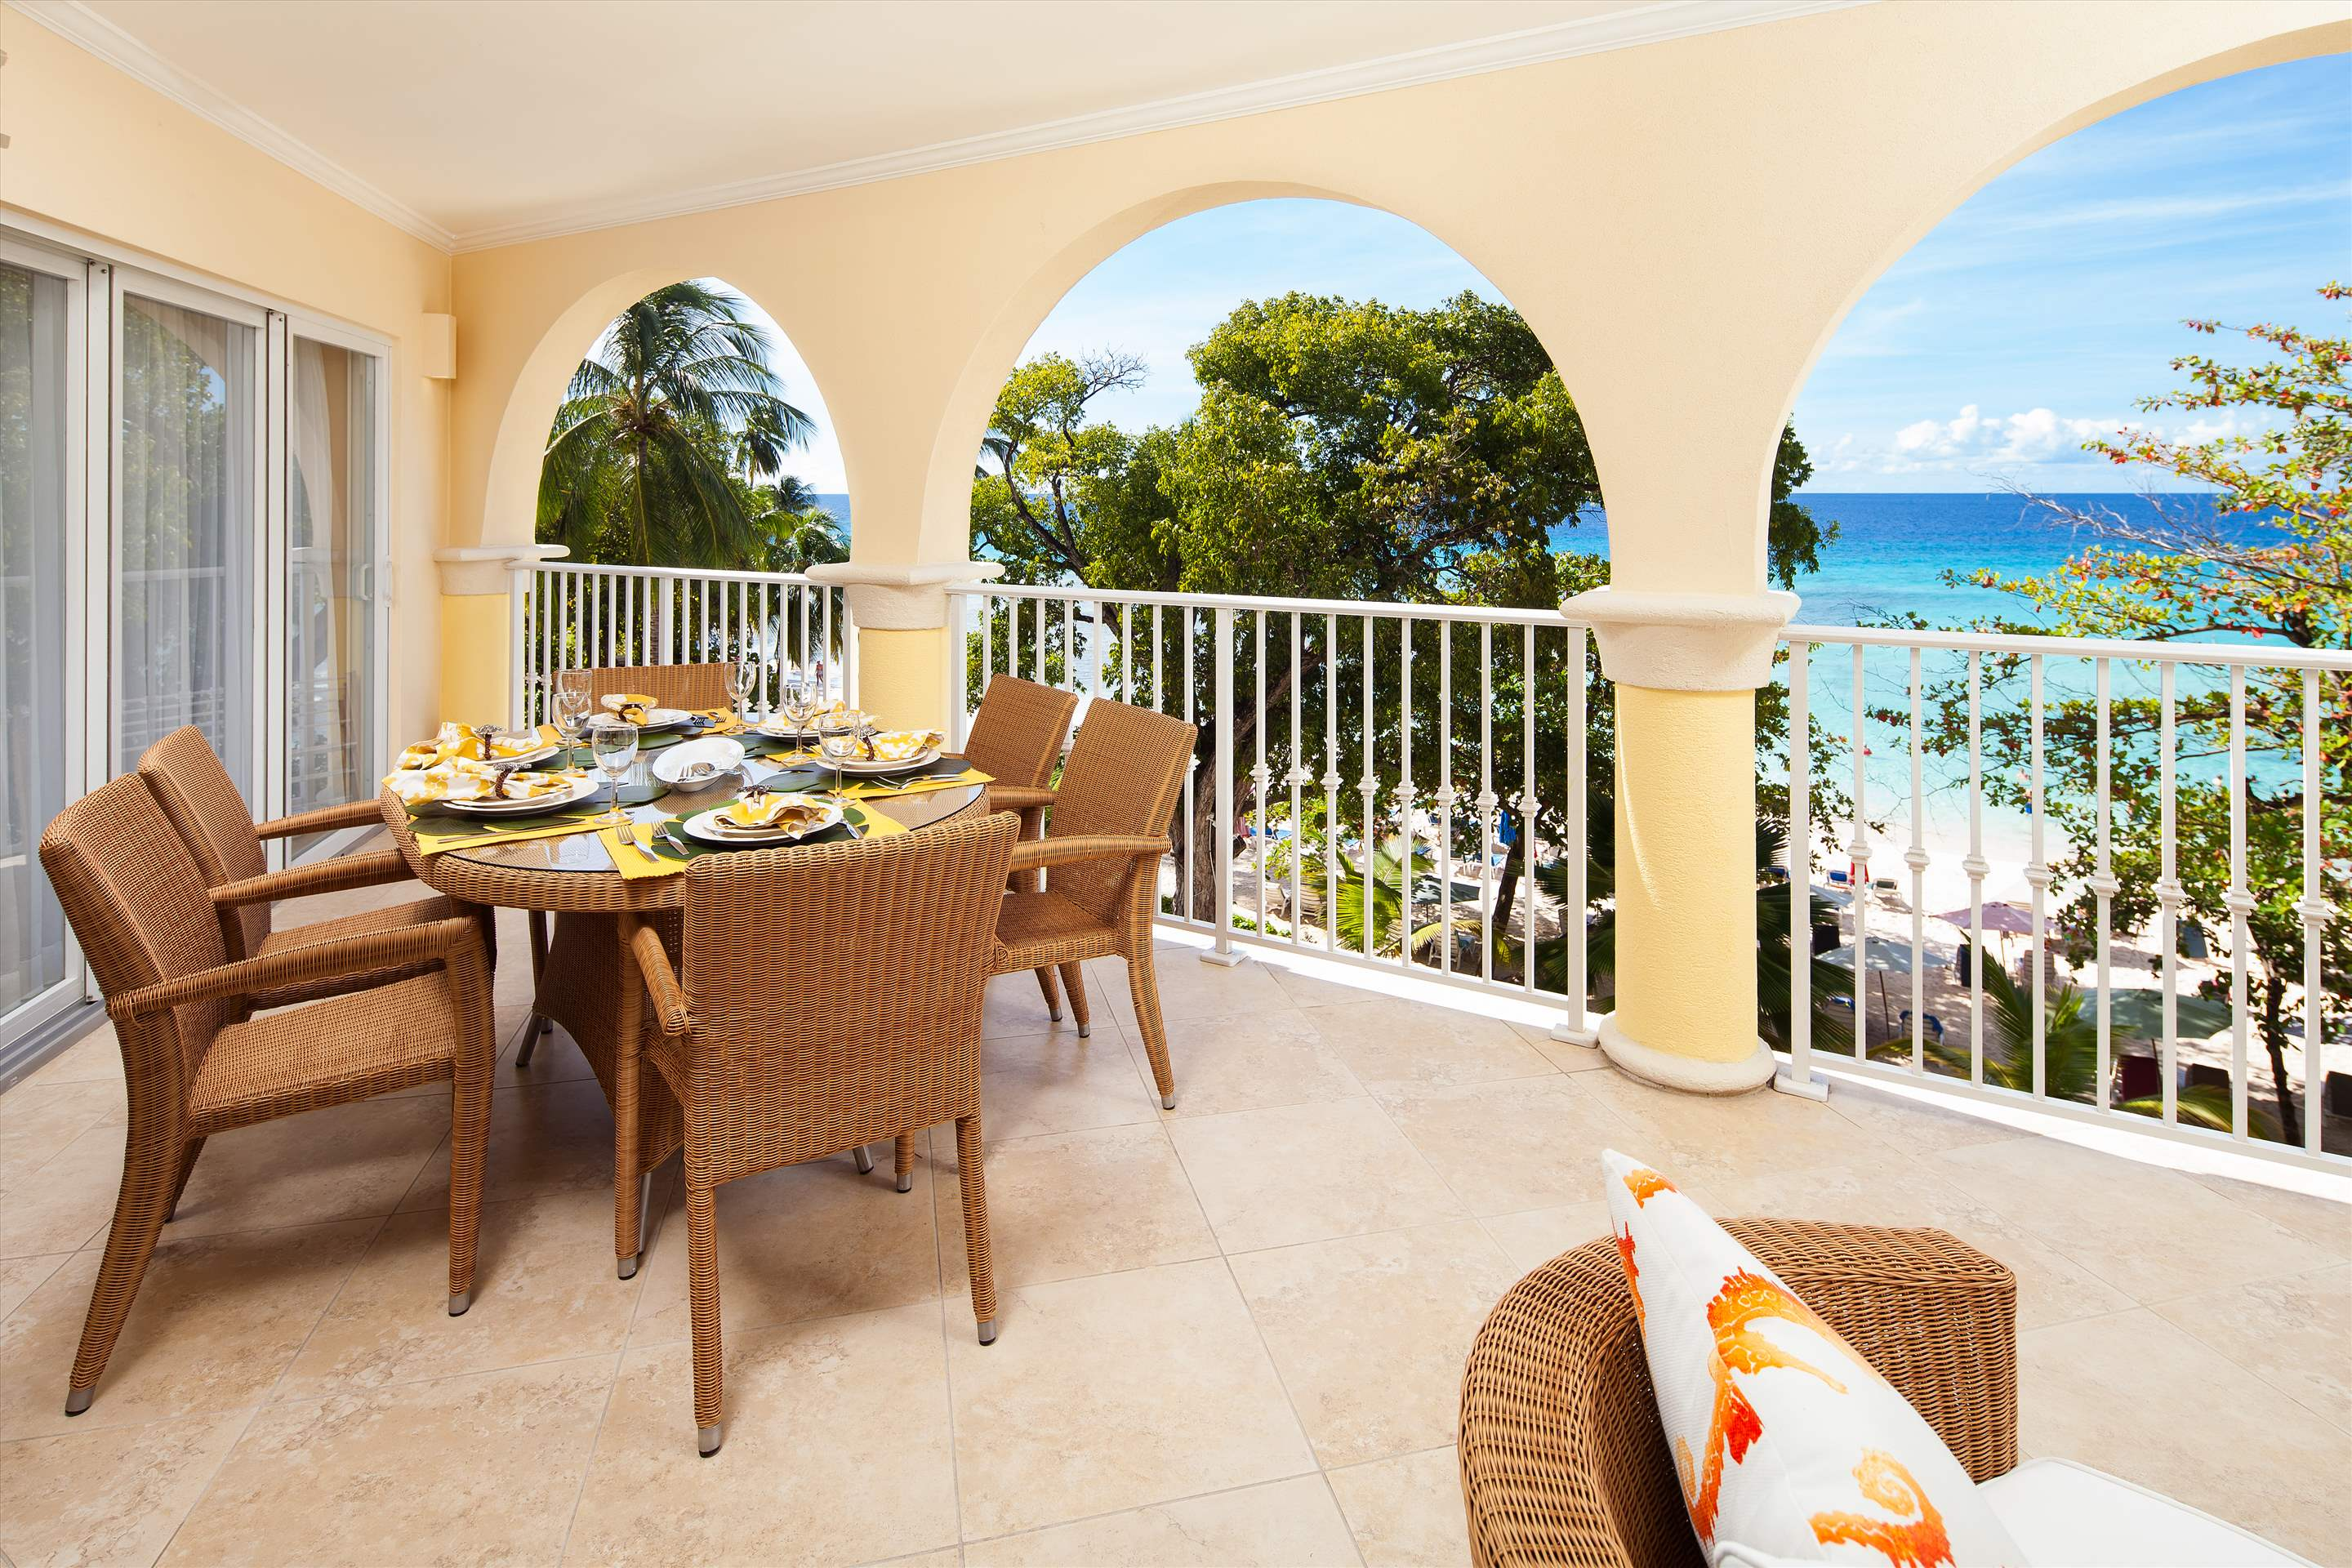 Sapphire Beach 309, 2 bedroom, 2 bedroom apartment in St. Lawrence Gap & South Coast, Barbados Photo #2